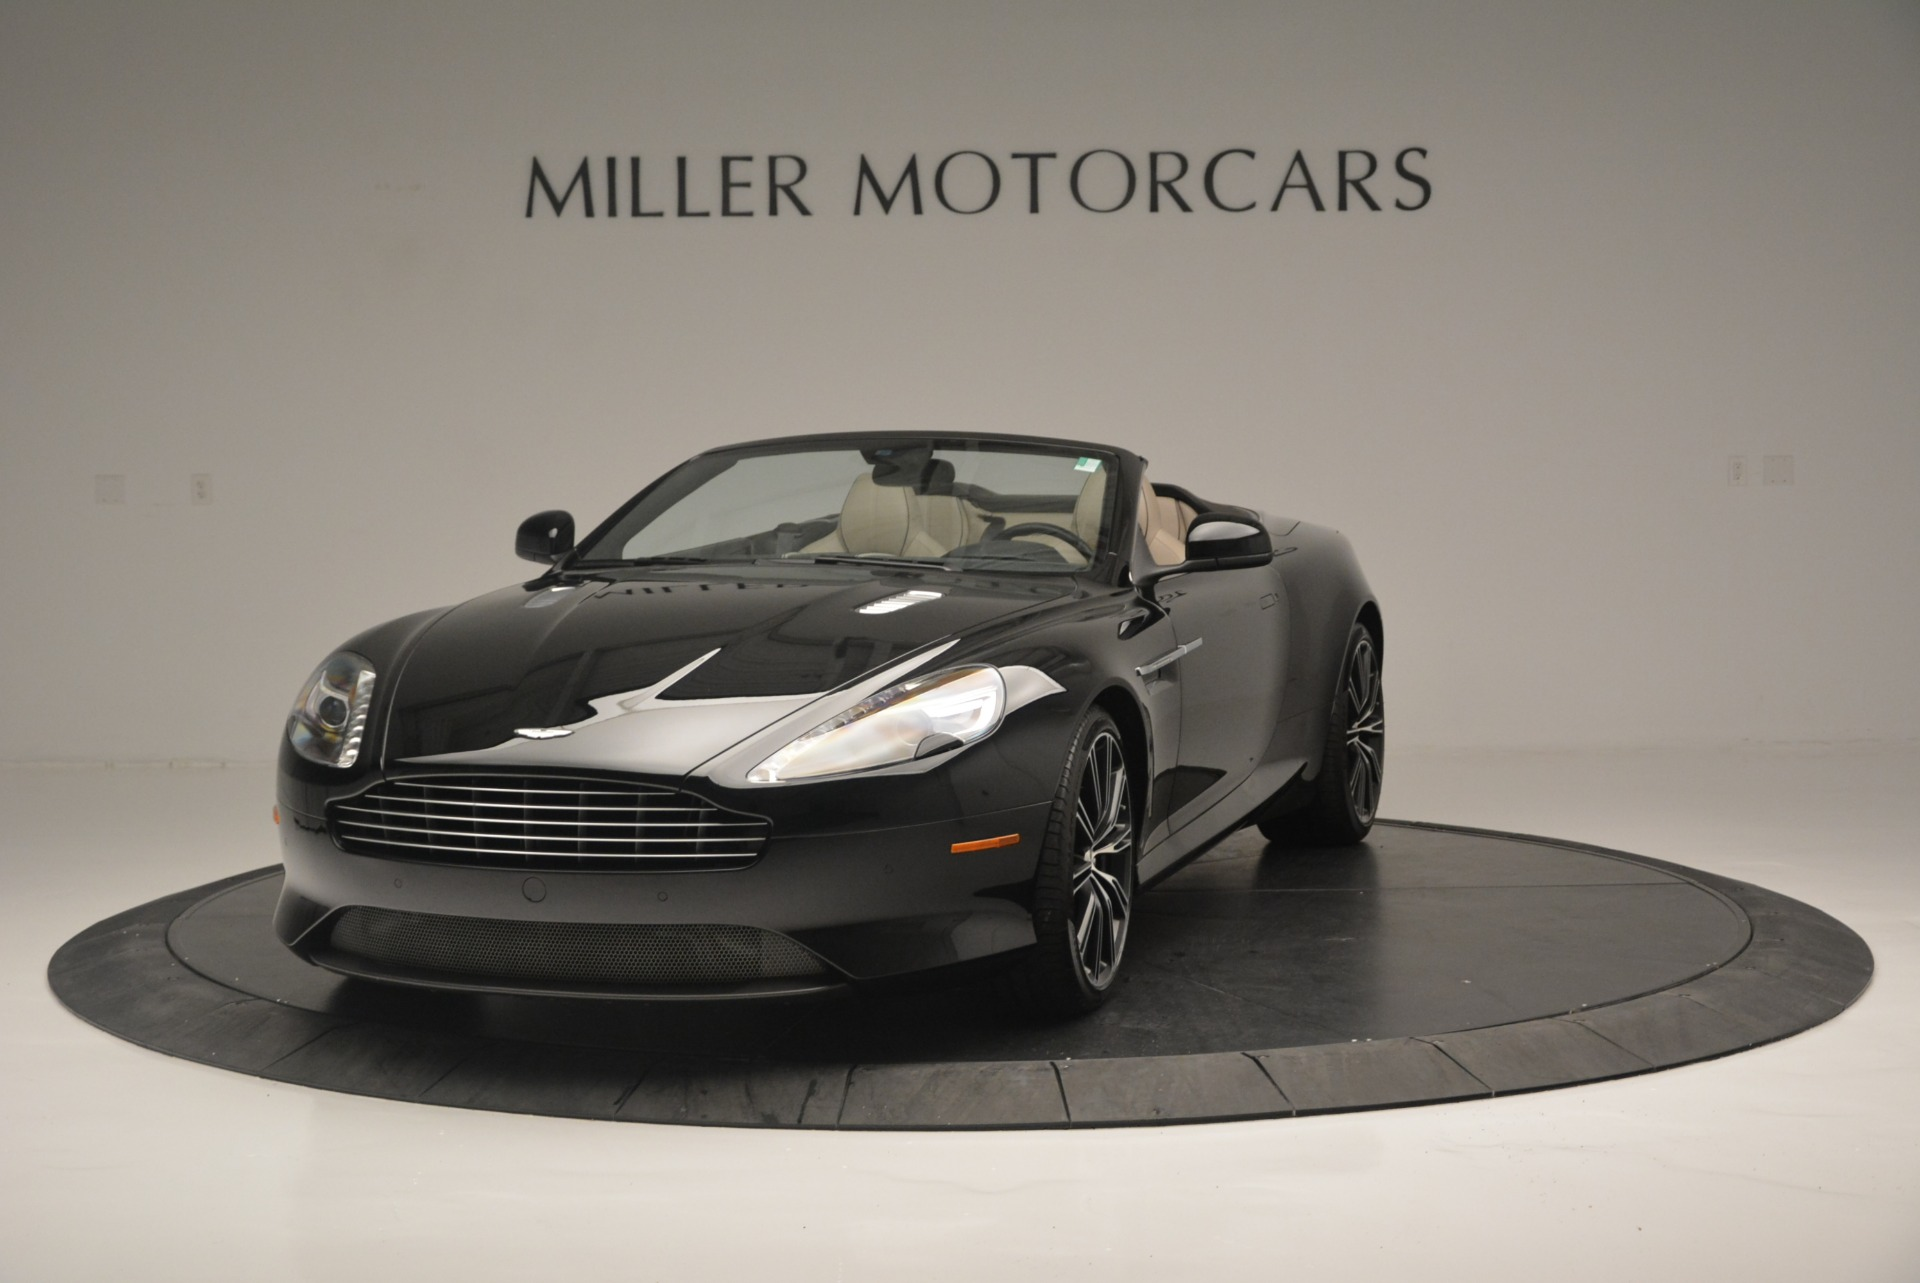 Used 2015 Aston Martin DB9 Volante for sale Sold at Aston Martin of Greenwich in Greenwich CT 06830 1